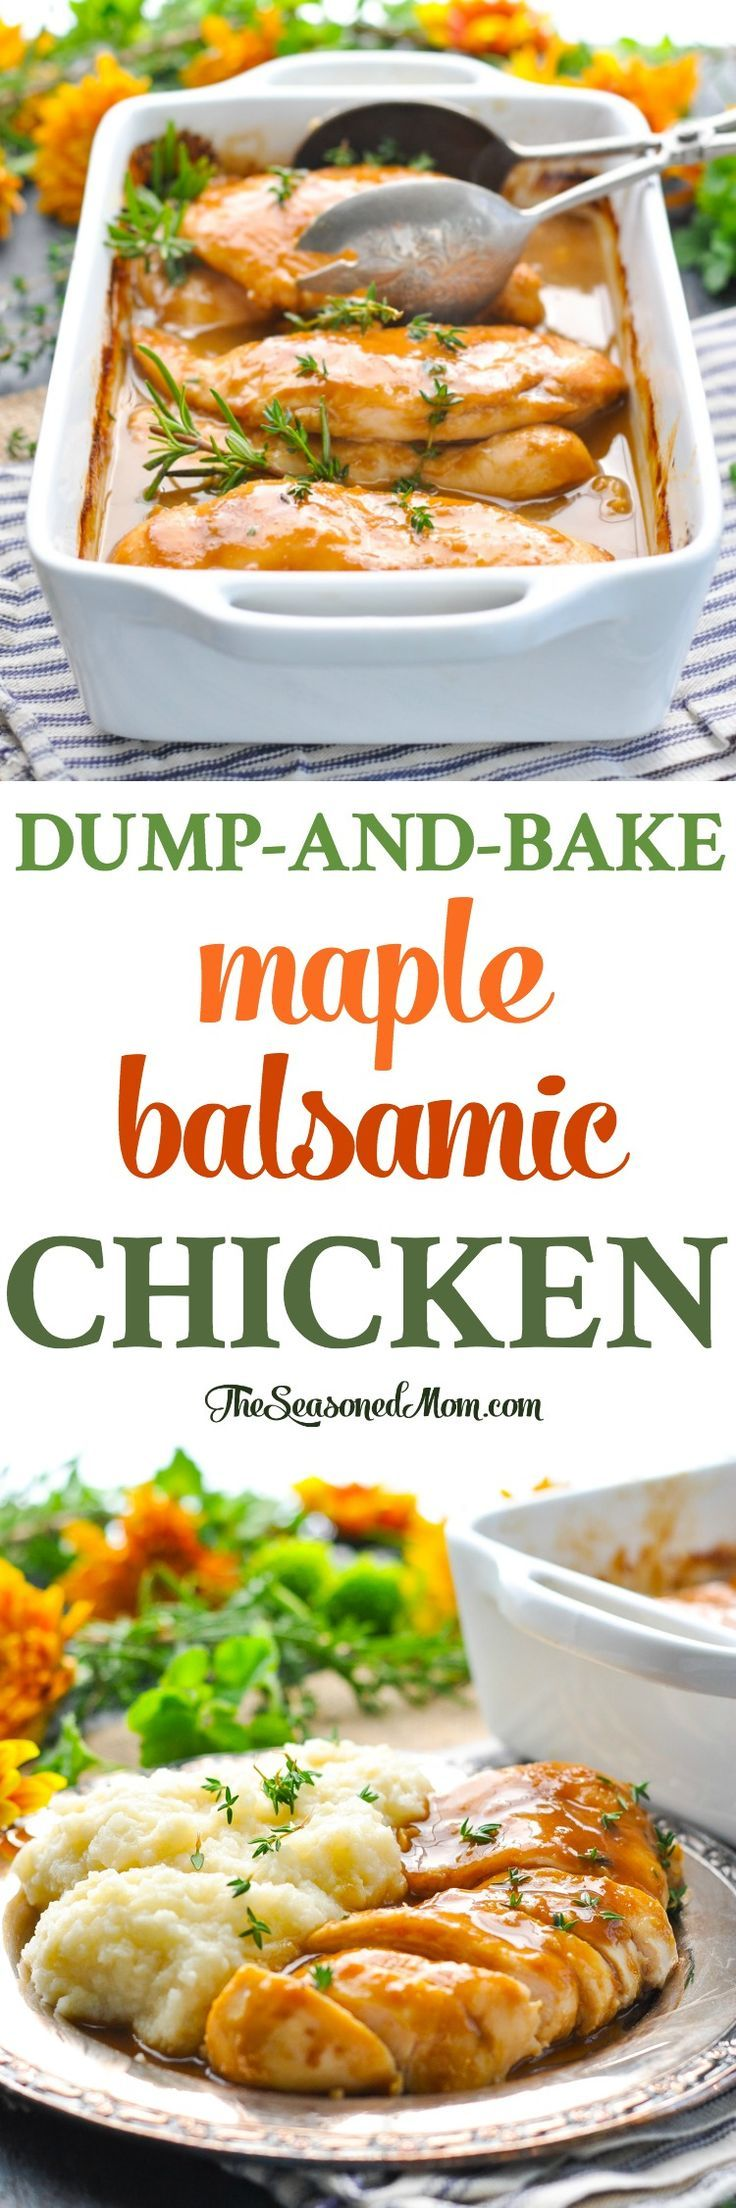 Just 10 minutes of prep for this easy dinner: Dump-and-Bake Maple Balsamic Chicken! Healthy Dinner Recipes | Chicken Breast Recipes #chicken #dinner #chickenbreast #realfood #ad @AlexiaFoods